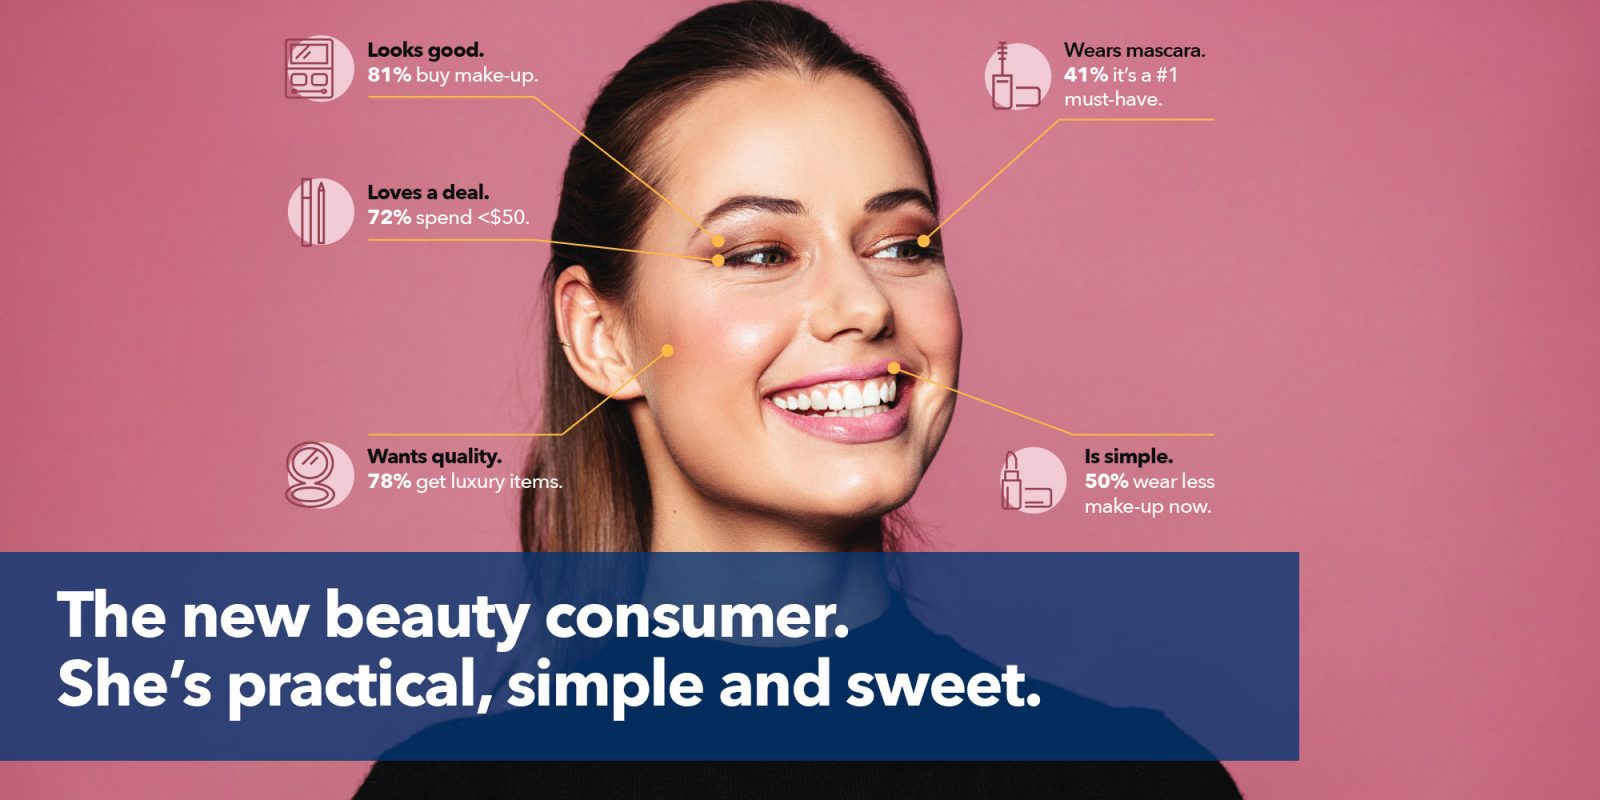 The new beauty consumer.